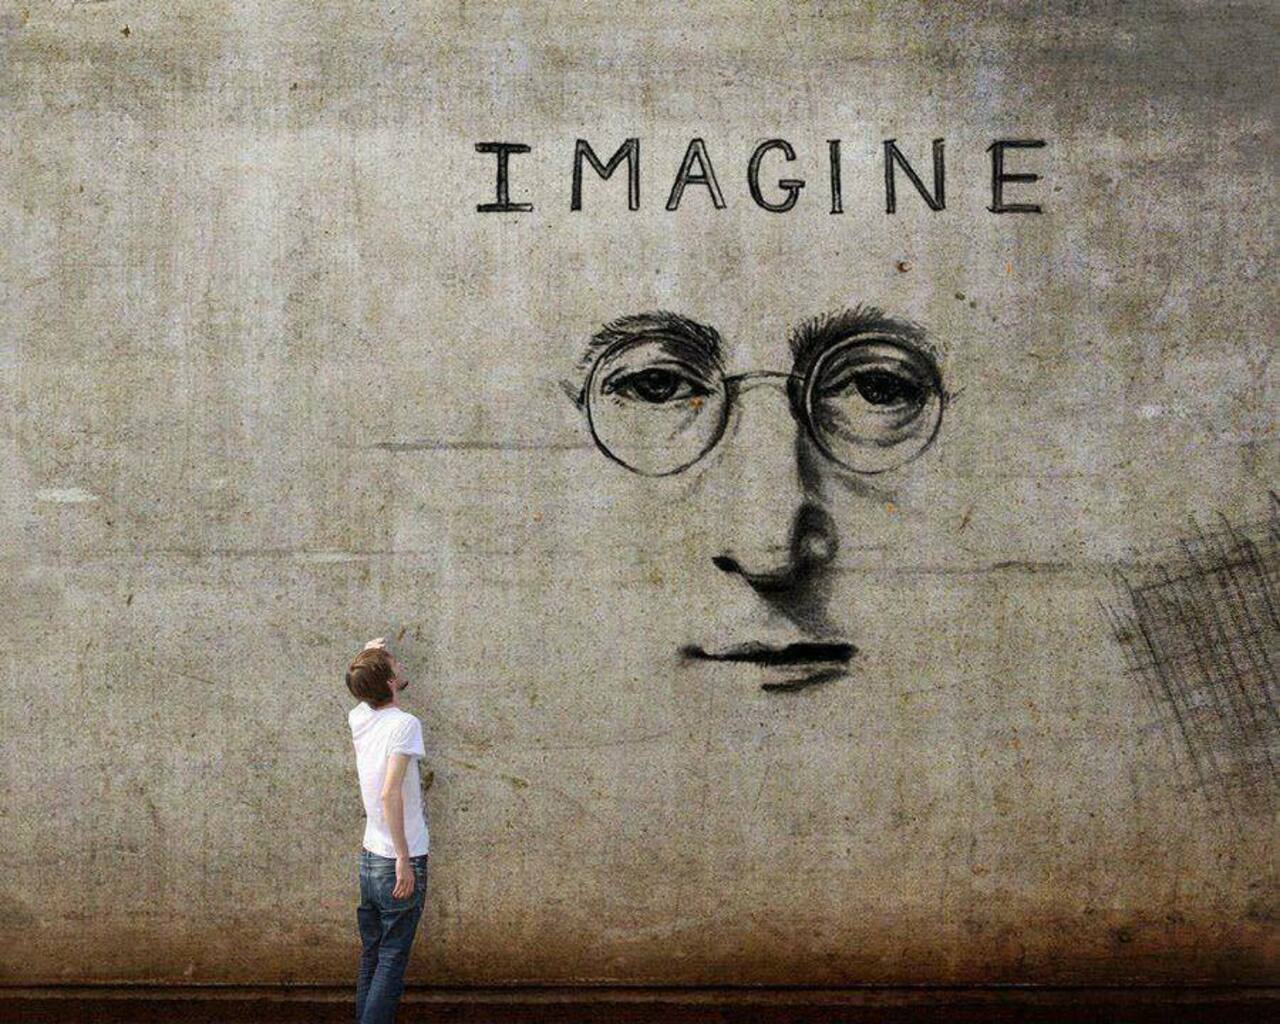 Imagine #JohnLennon – #Creative #Streetart – Be ▲rtist – Be ▲rt Magazine http://crwd.fr/2jJGmqX https://t.co/KJ38Ek9Vld